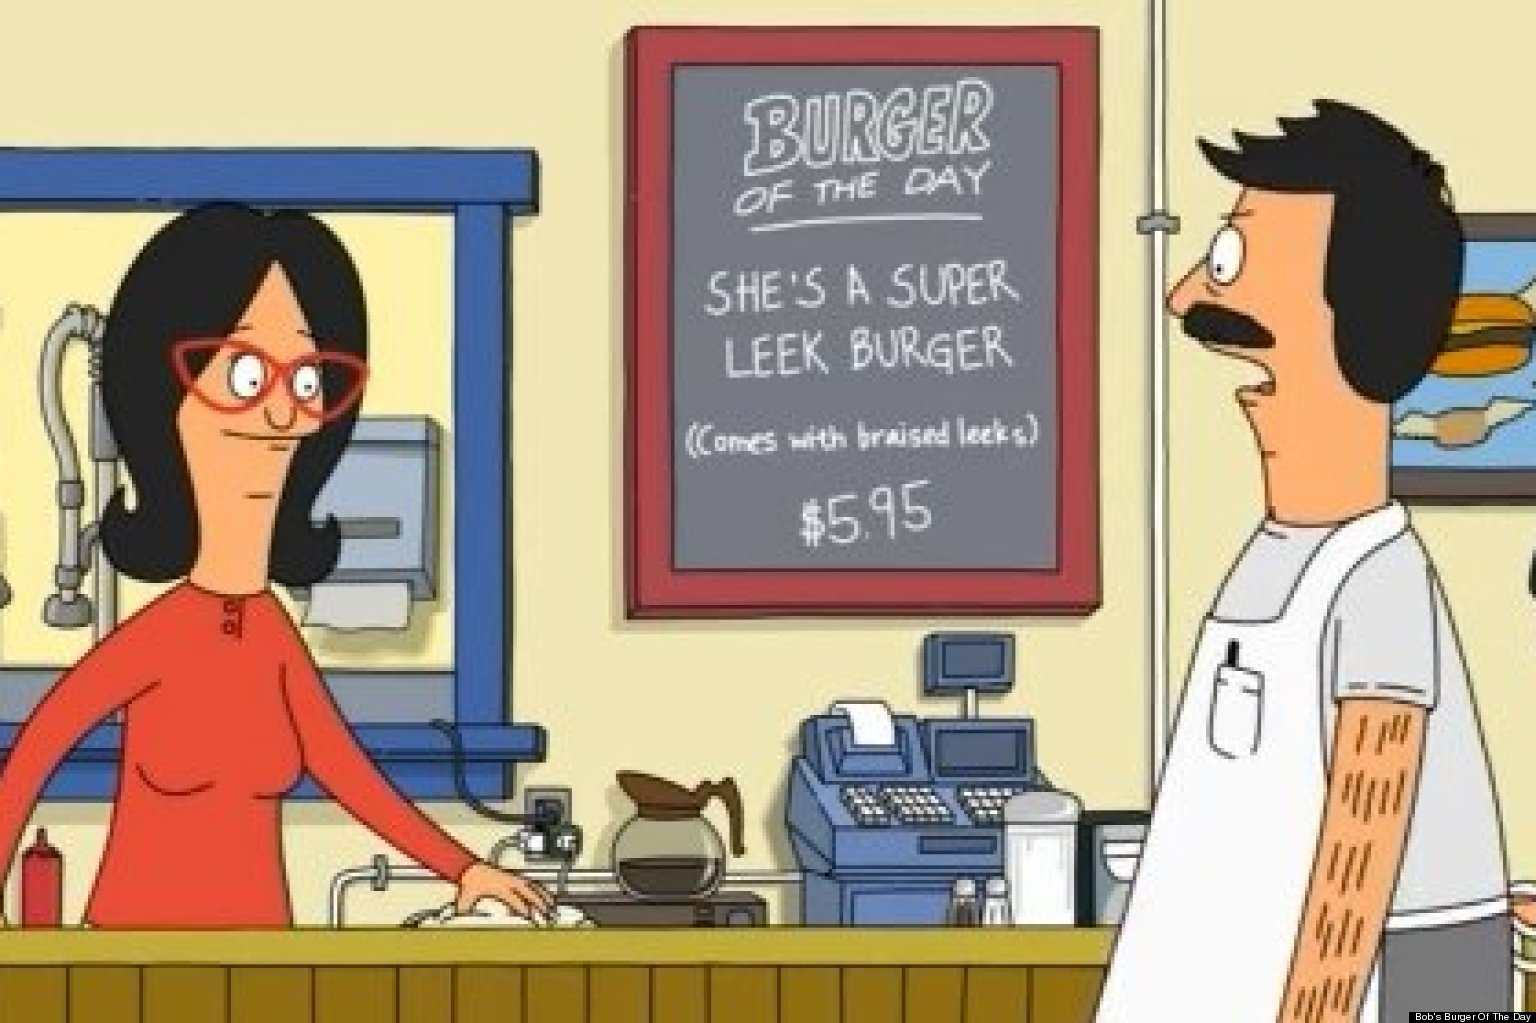 Bob S Burger Of The Day Tumblr Is Delightful Photos